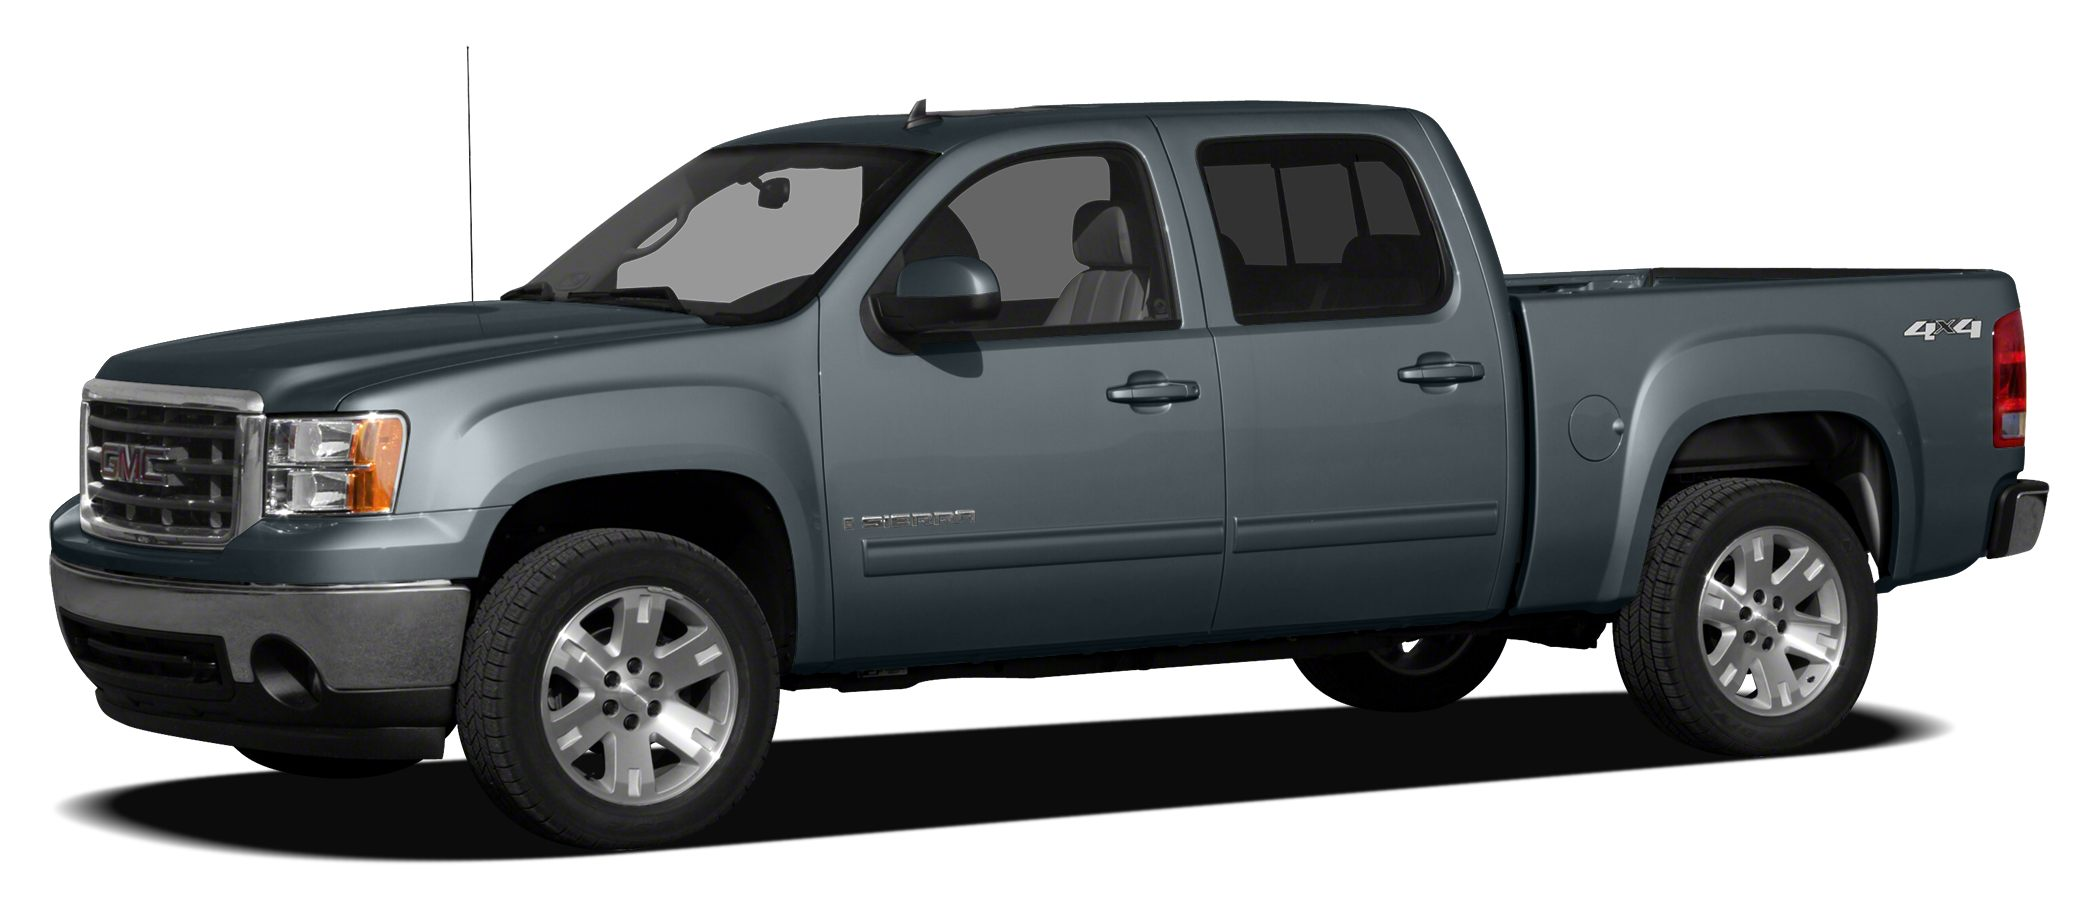 2012 GMC Sierra 1500 SLT CARFAX 1-Owner Excellent Condition GREAT MILES 22773 PRICED TO MOVE